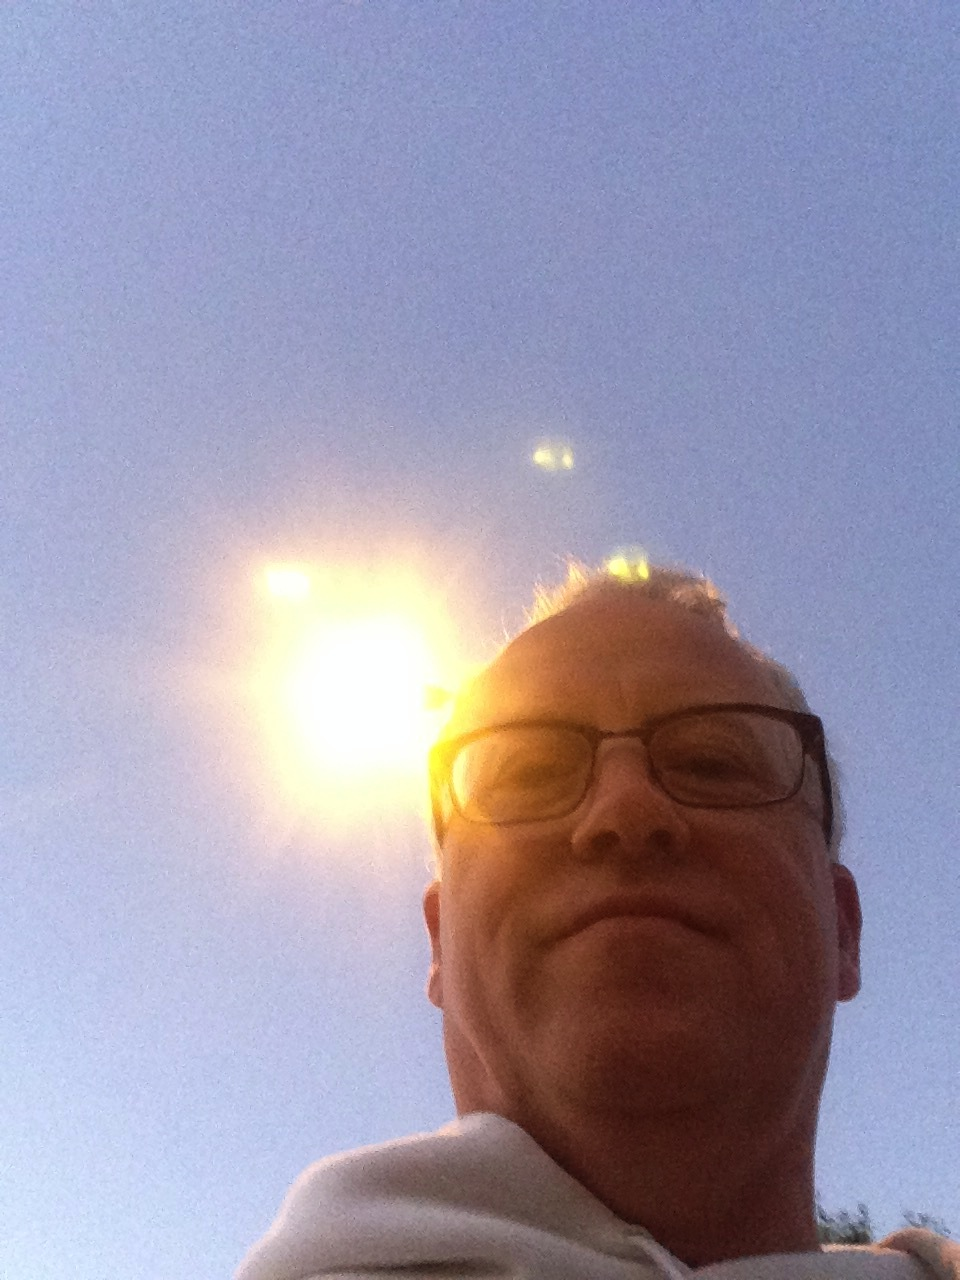 The the tapered, white cement lamp post is behind my head.